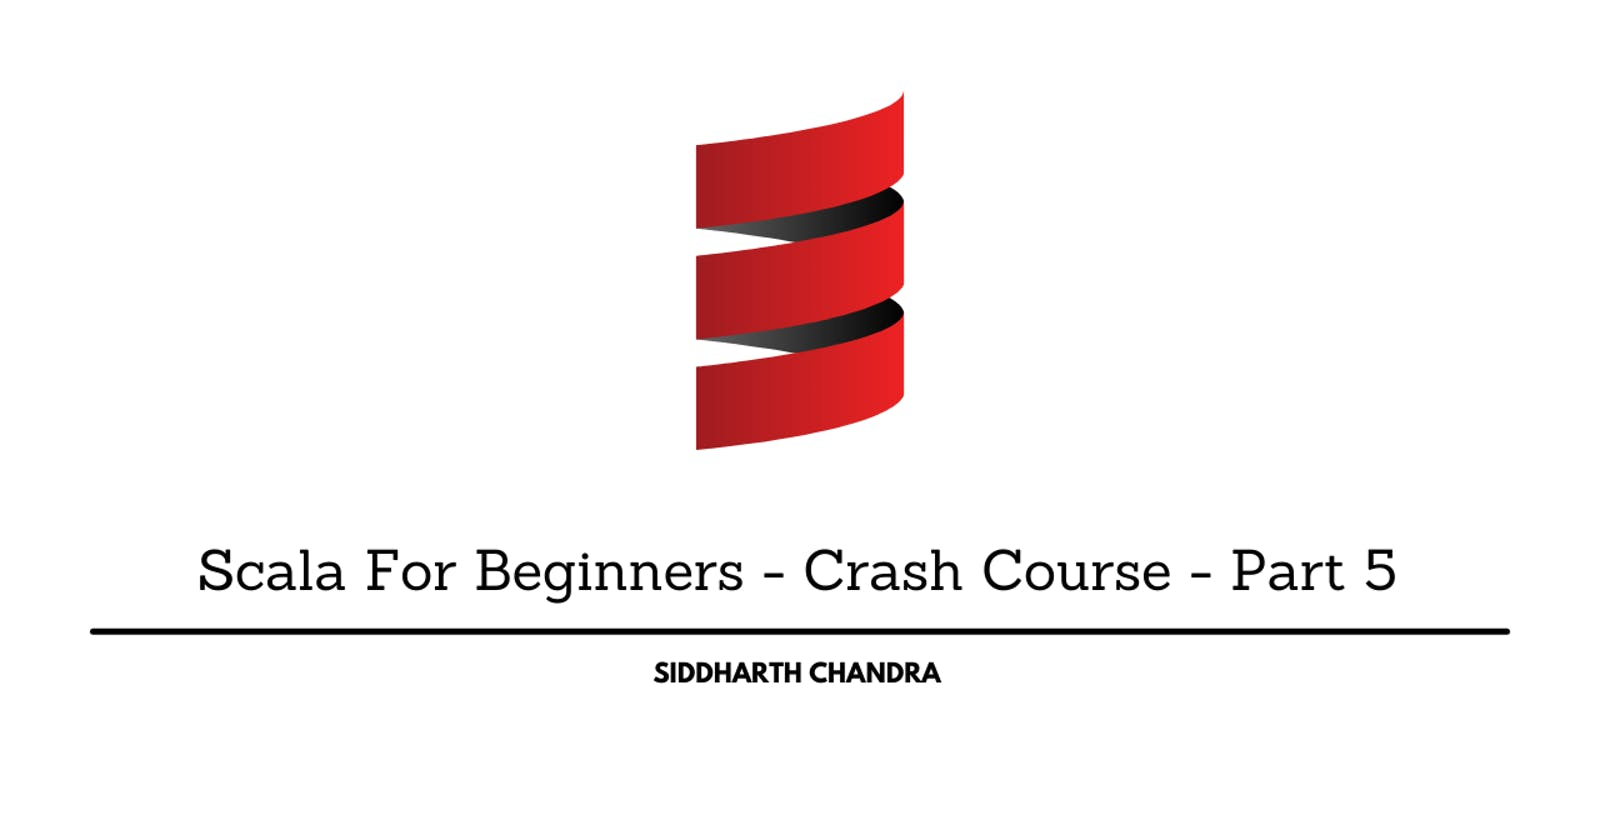 Scala For Beginners - Crash Course - Part 5